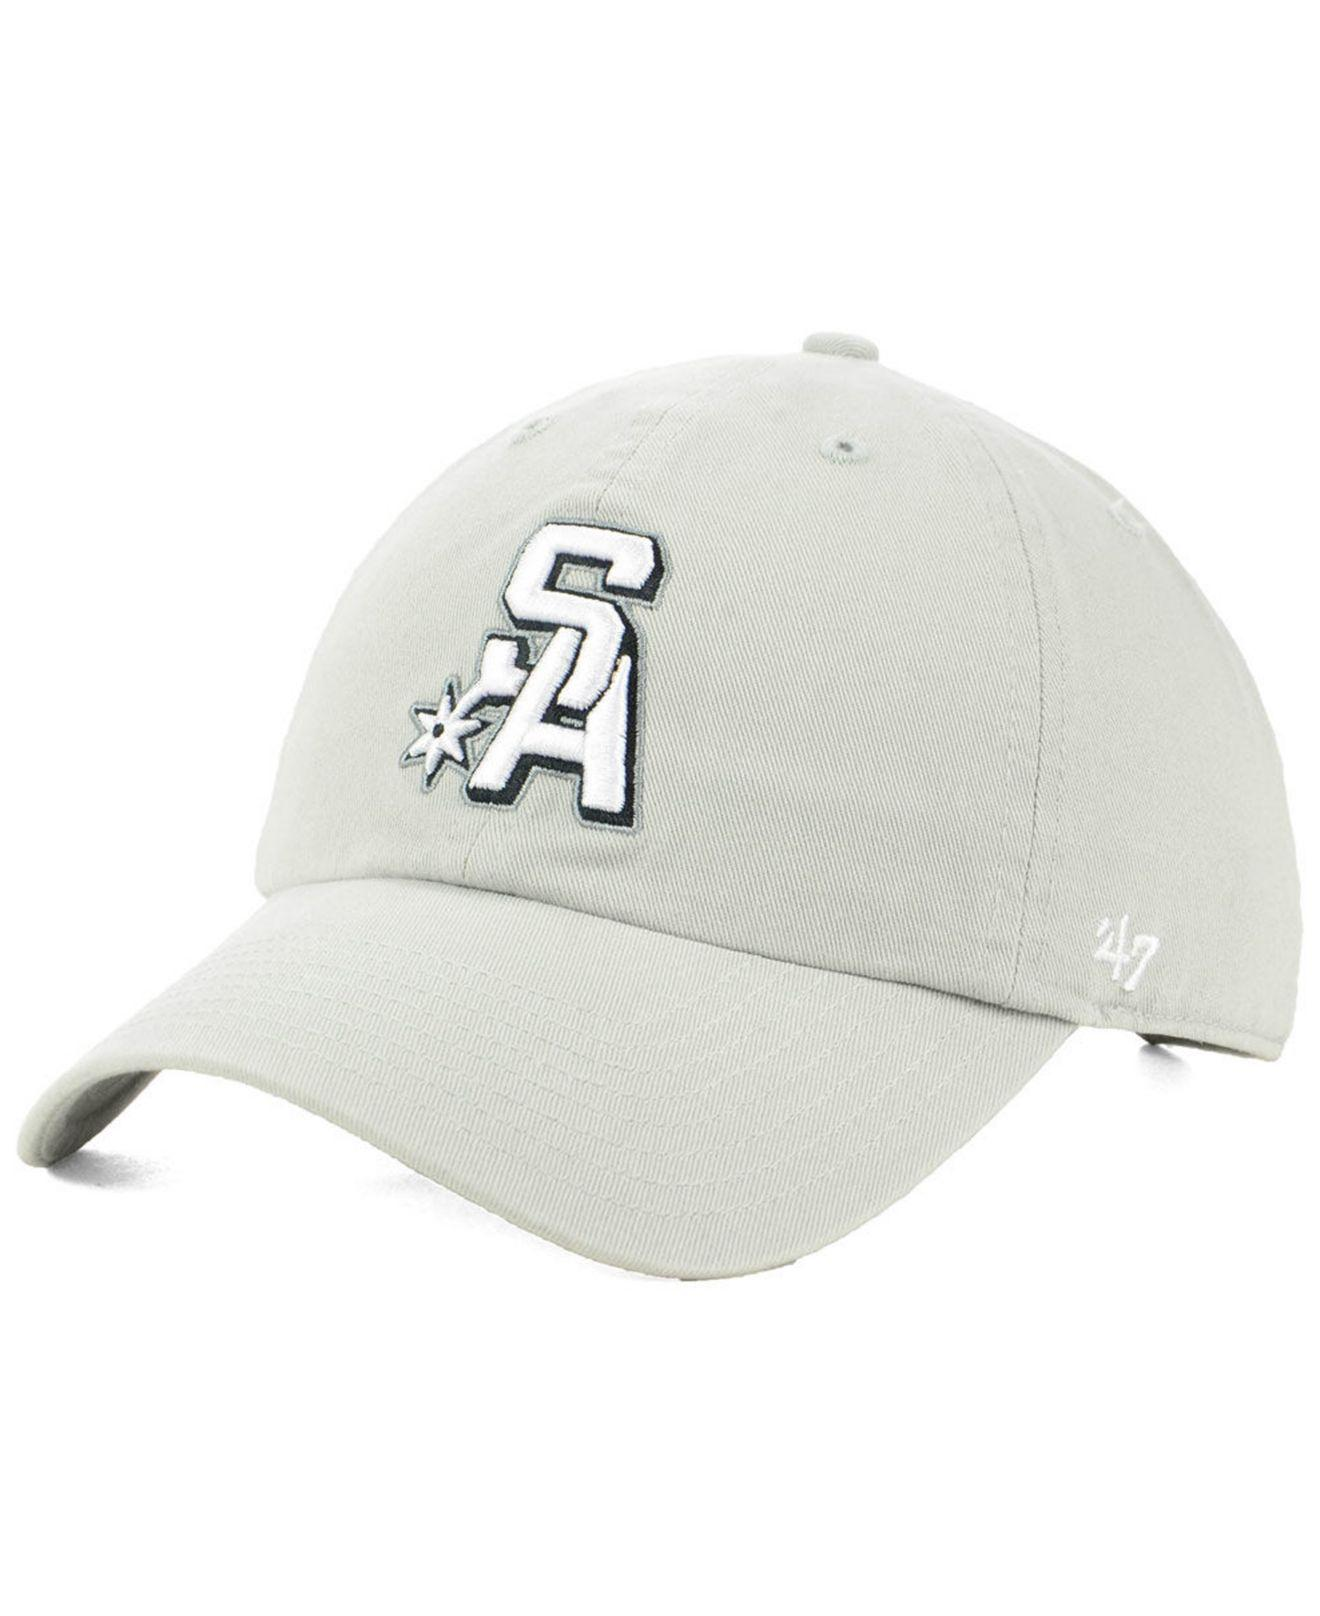 025c40298 Lyst - 47 Brand San Antonio Spurs Mash Up Clean Up Cap in Gray for Men